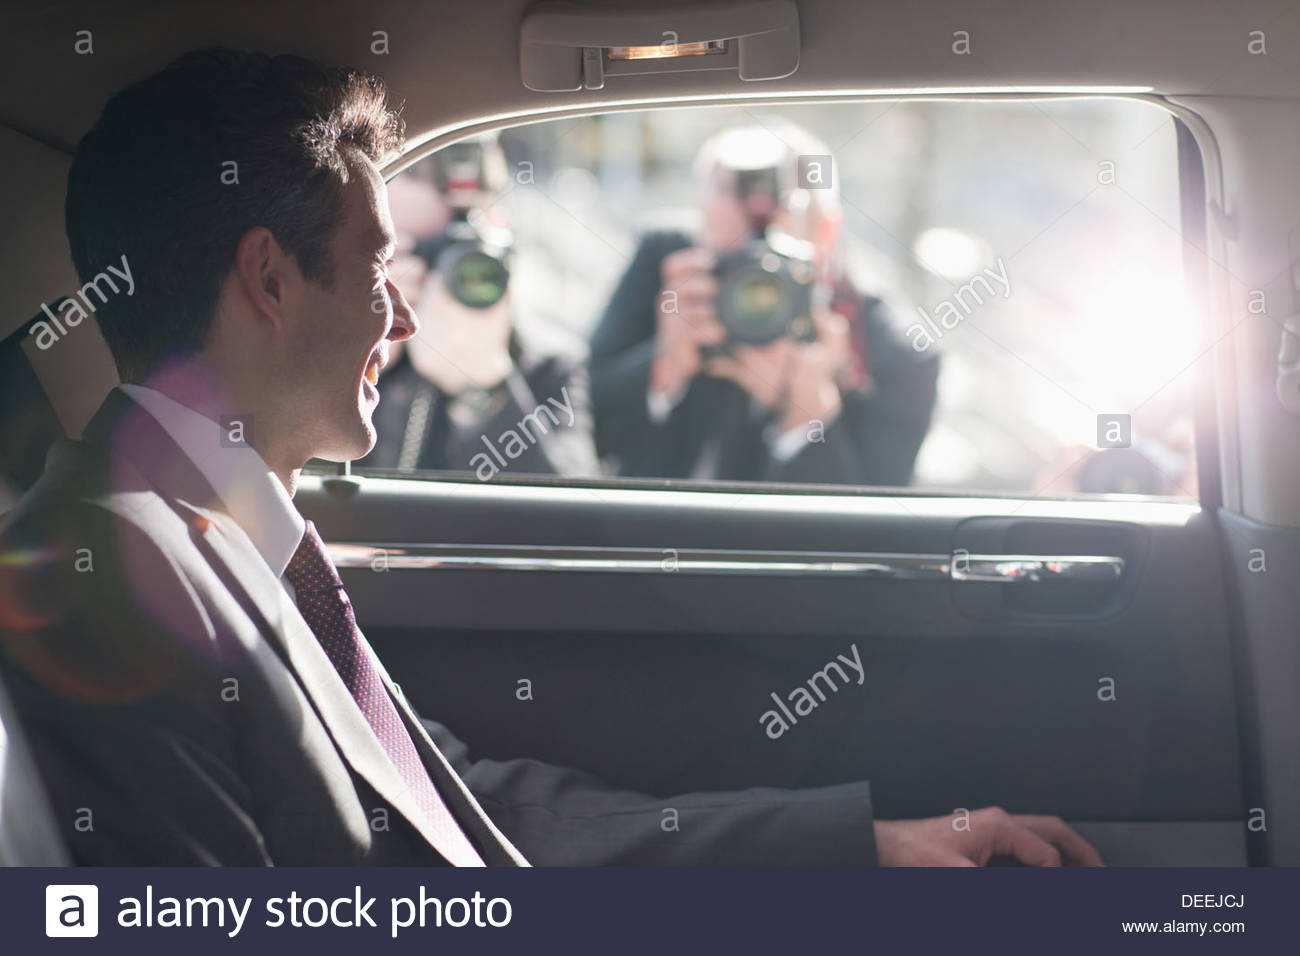 Smiling politicien pour paparazzi in backseat of car Photo Stock